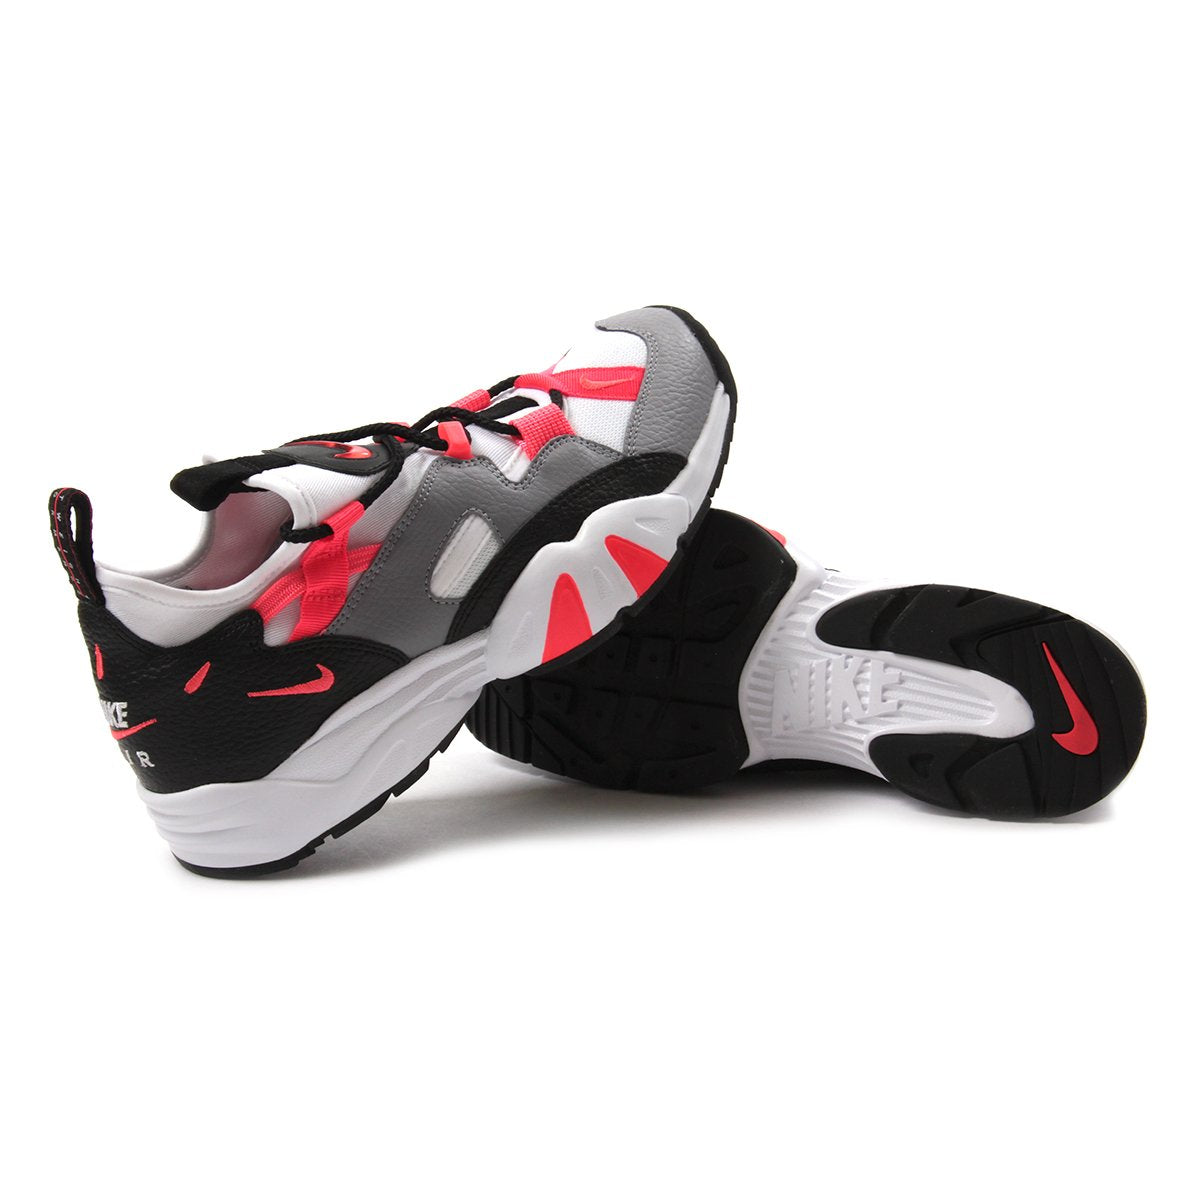 7f314625922 Nike Air Scream LWP (Cement Grey Infrared)